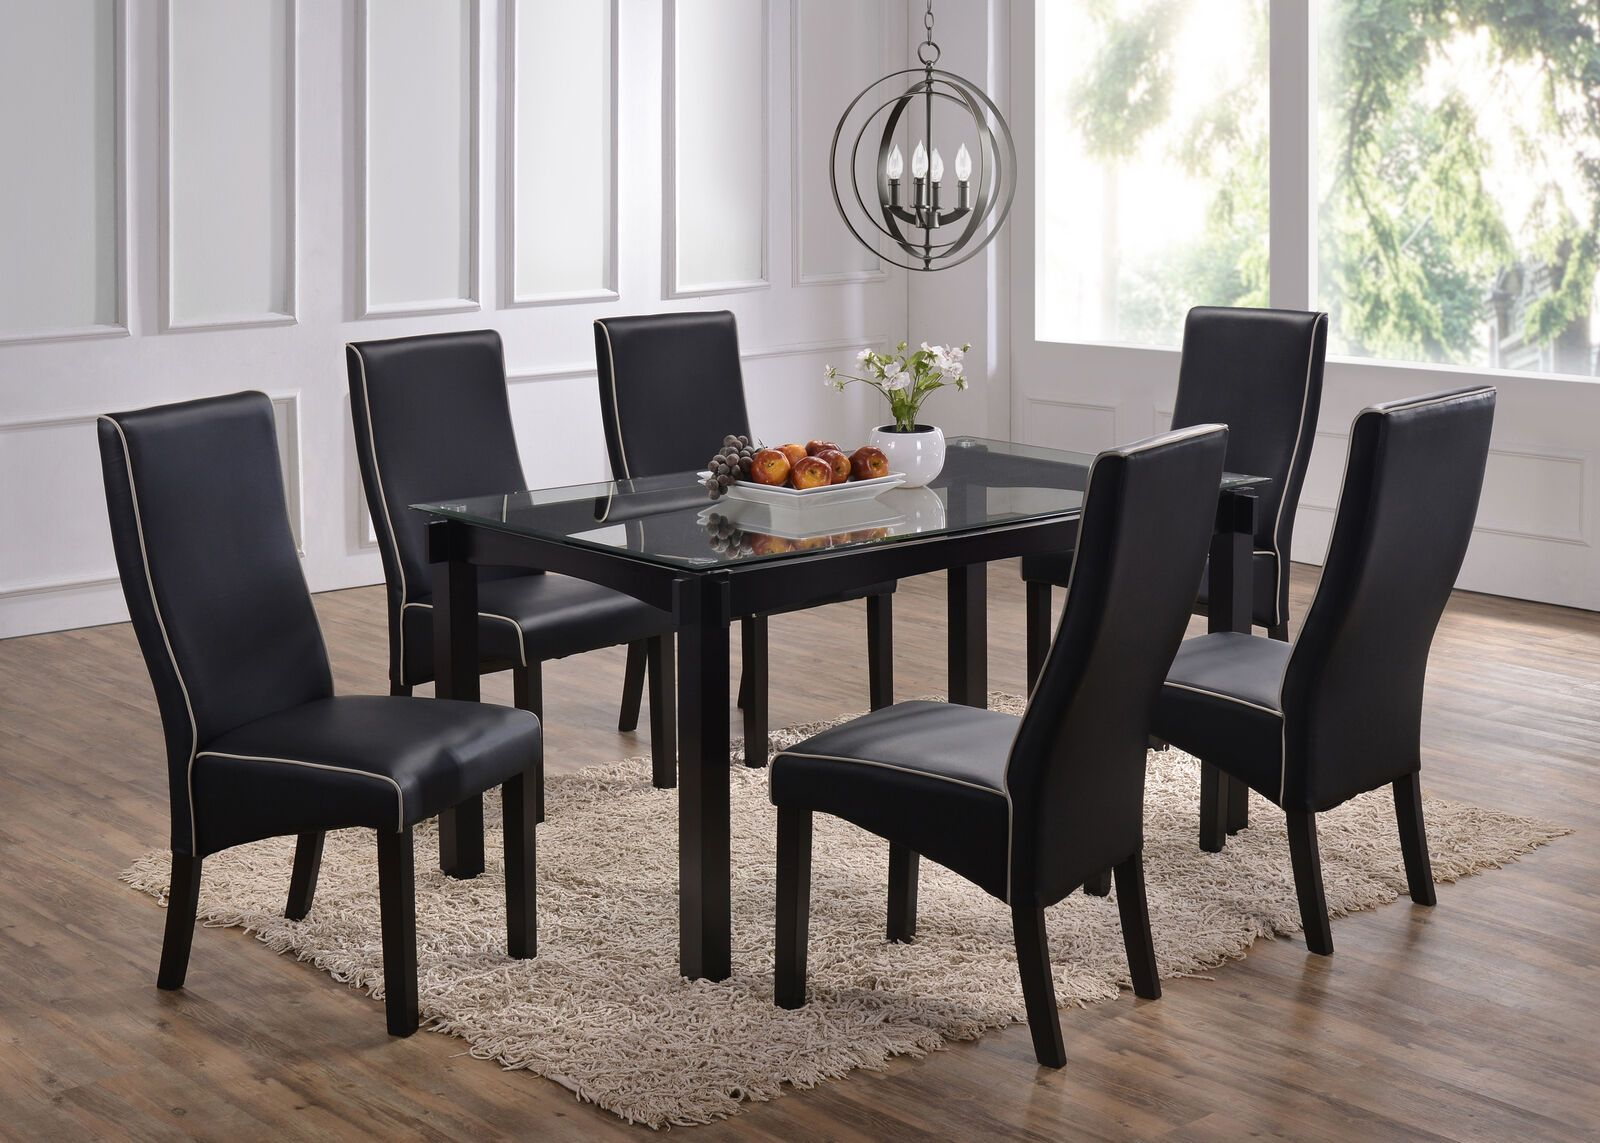 Kings Brand Furniture 7 Piece Dining